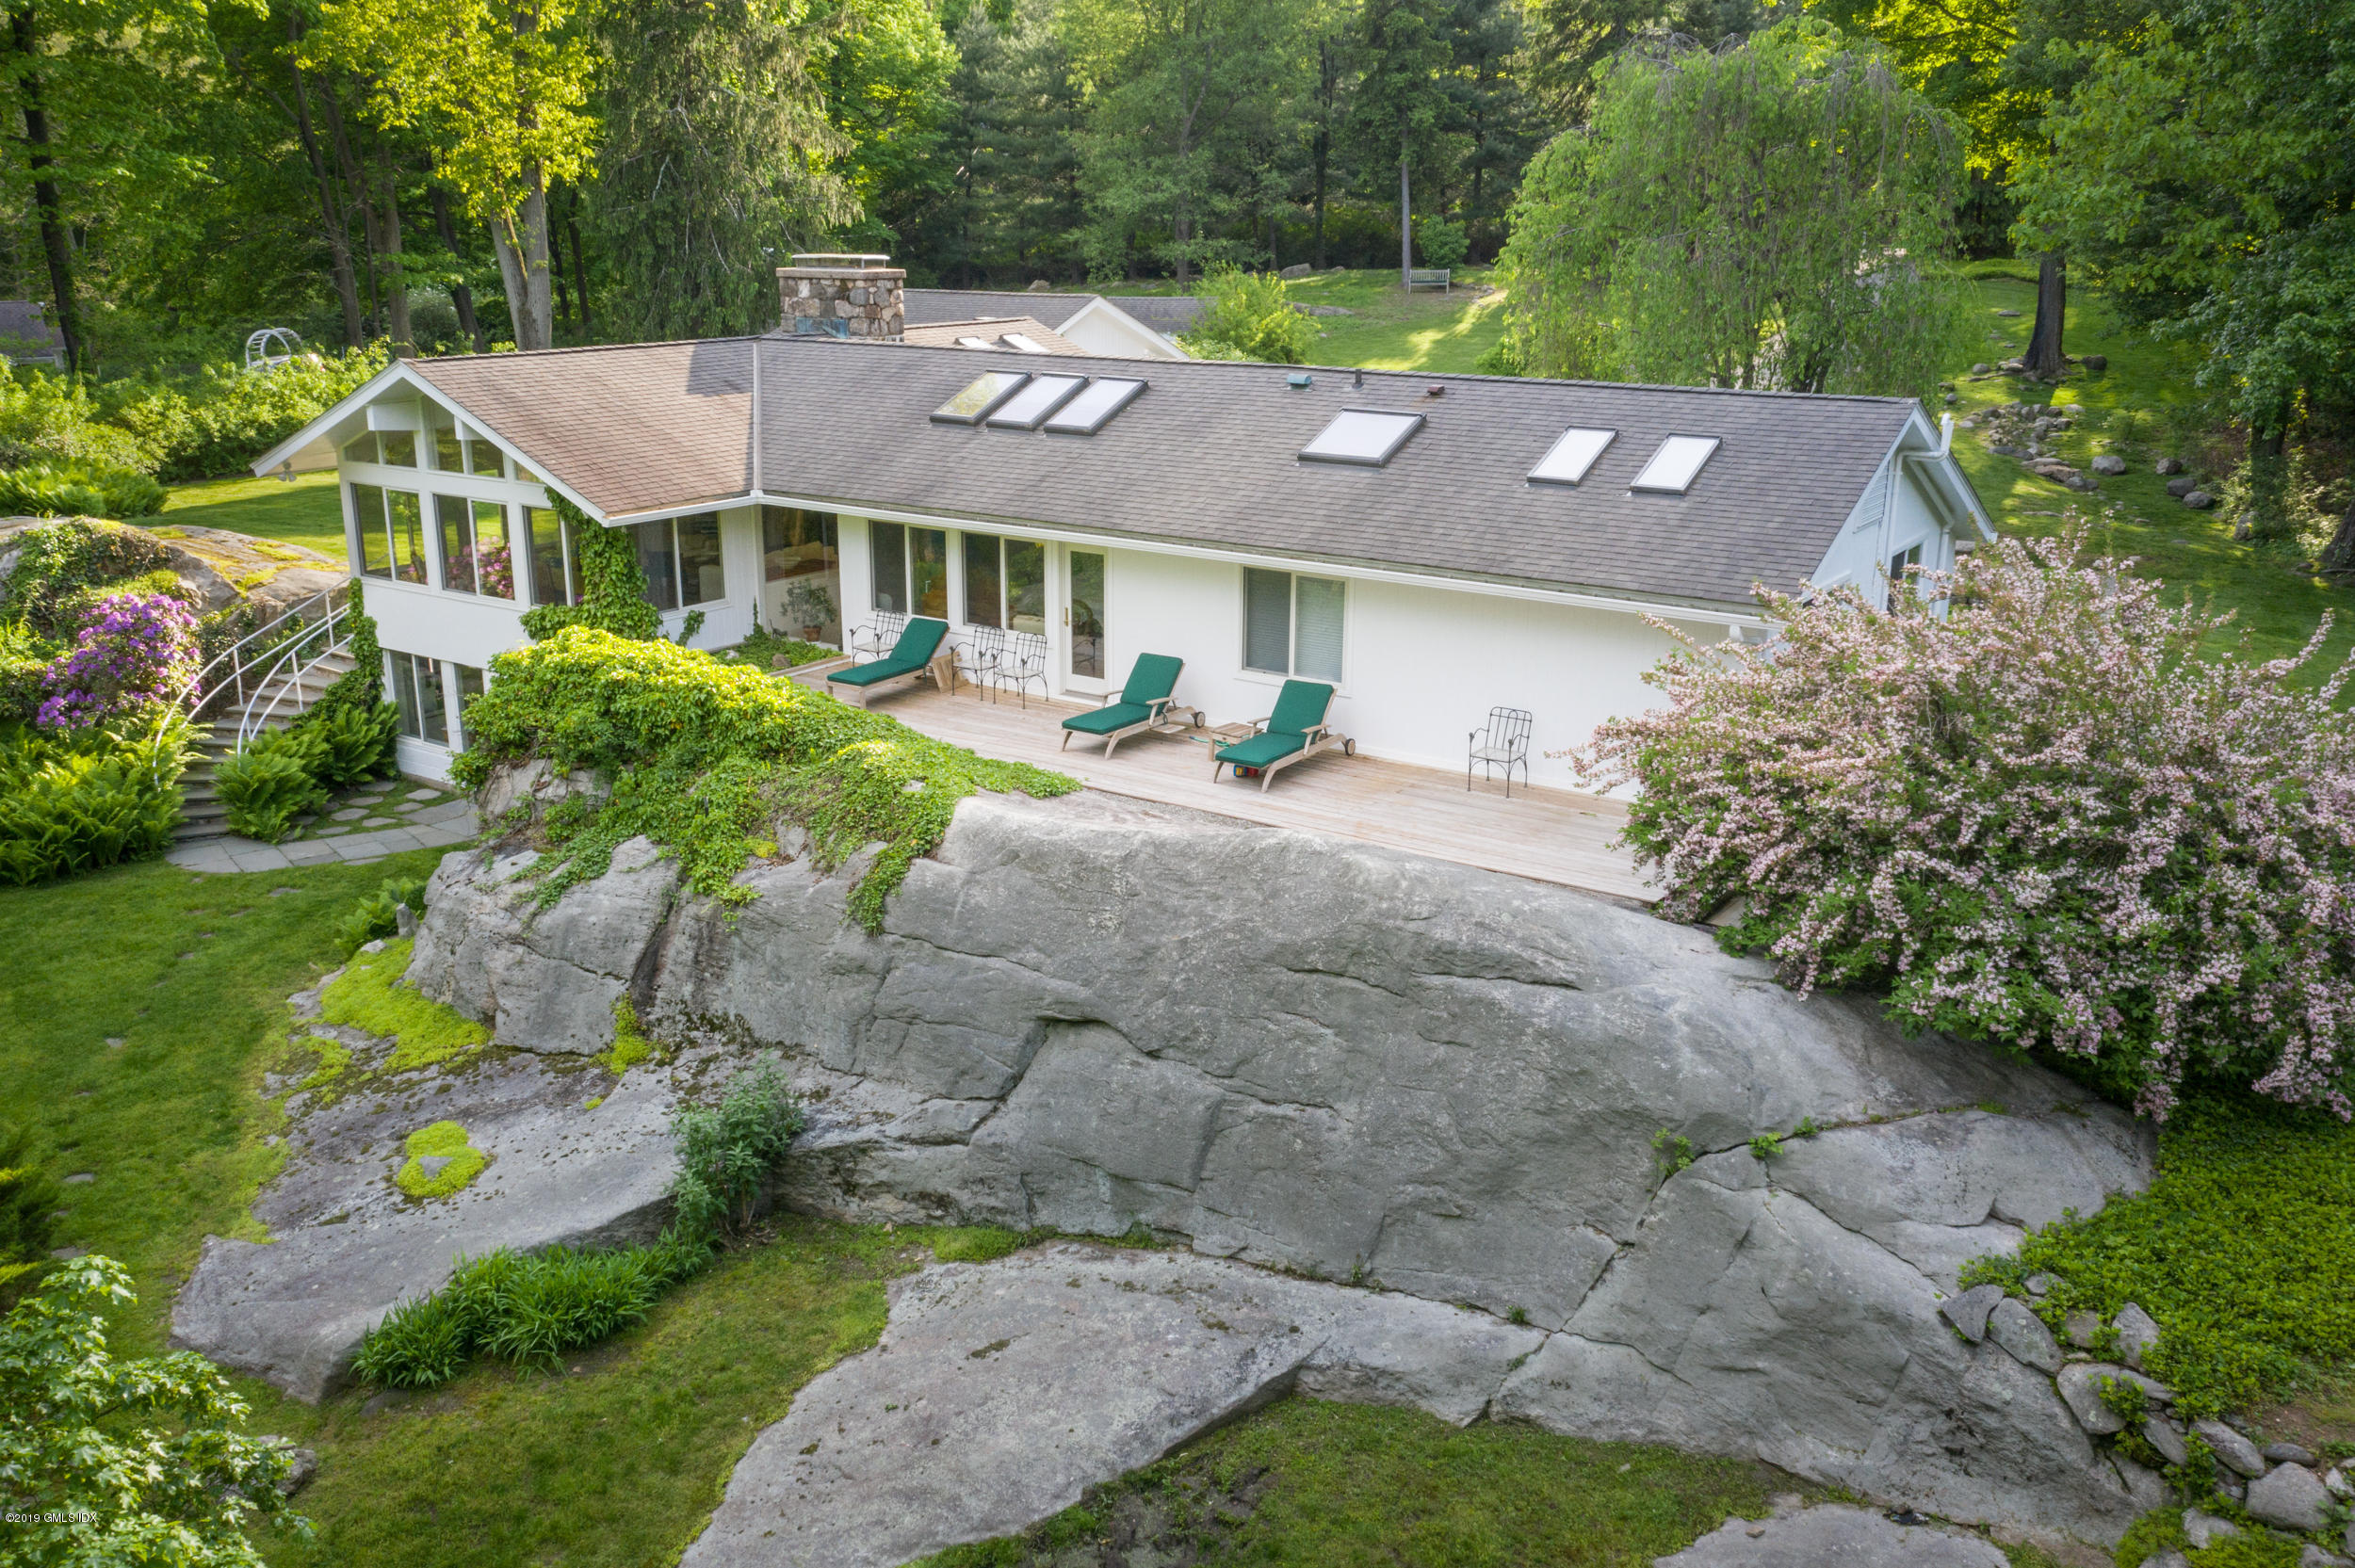 106 Hunting Ridge Road,Greenwich,Connecticut 06831,3 Bedrooms Bedrooms,2 BathroomsBathrooms,Single family,Hunting Ridge,104417